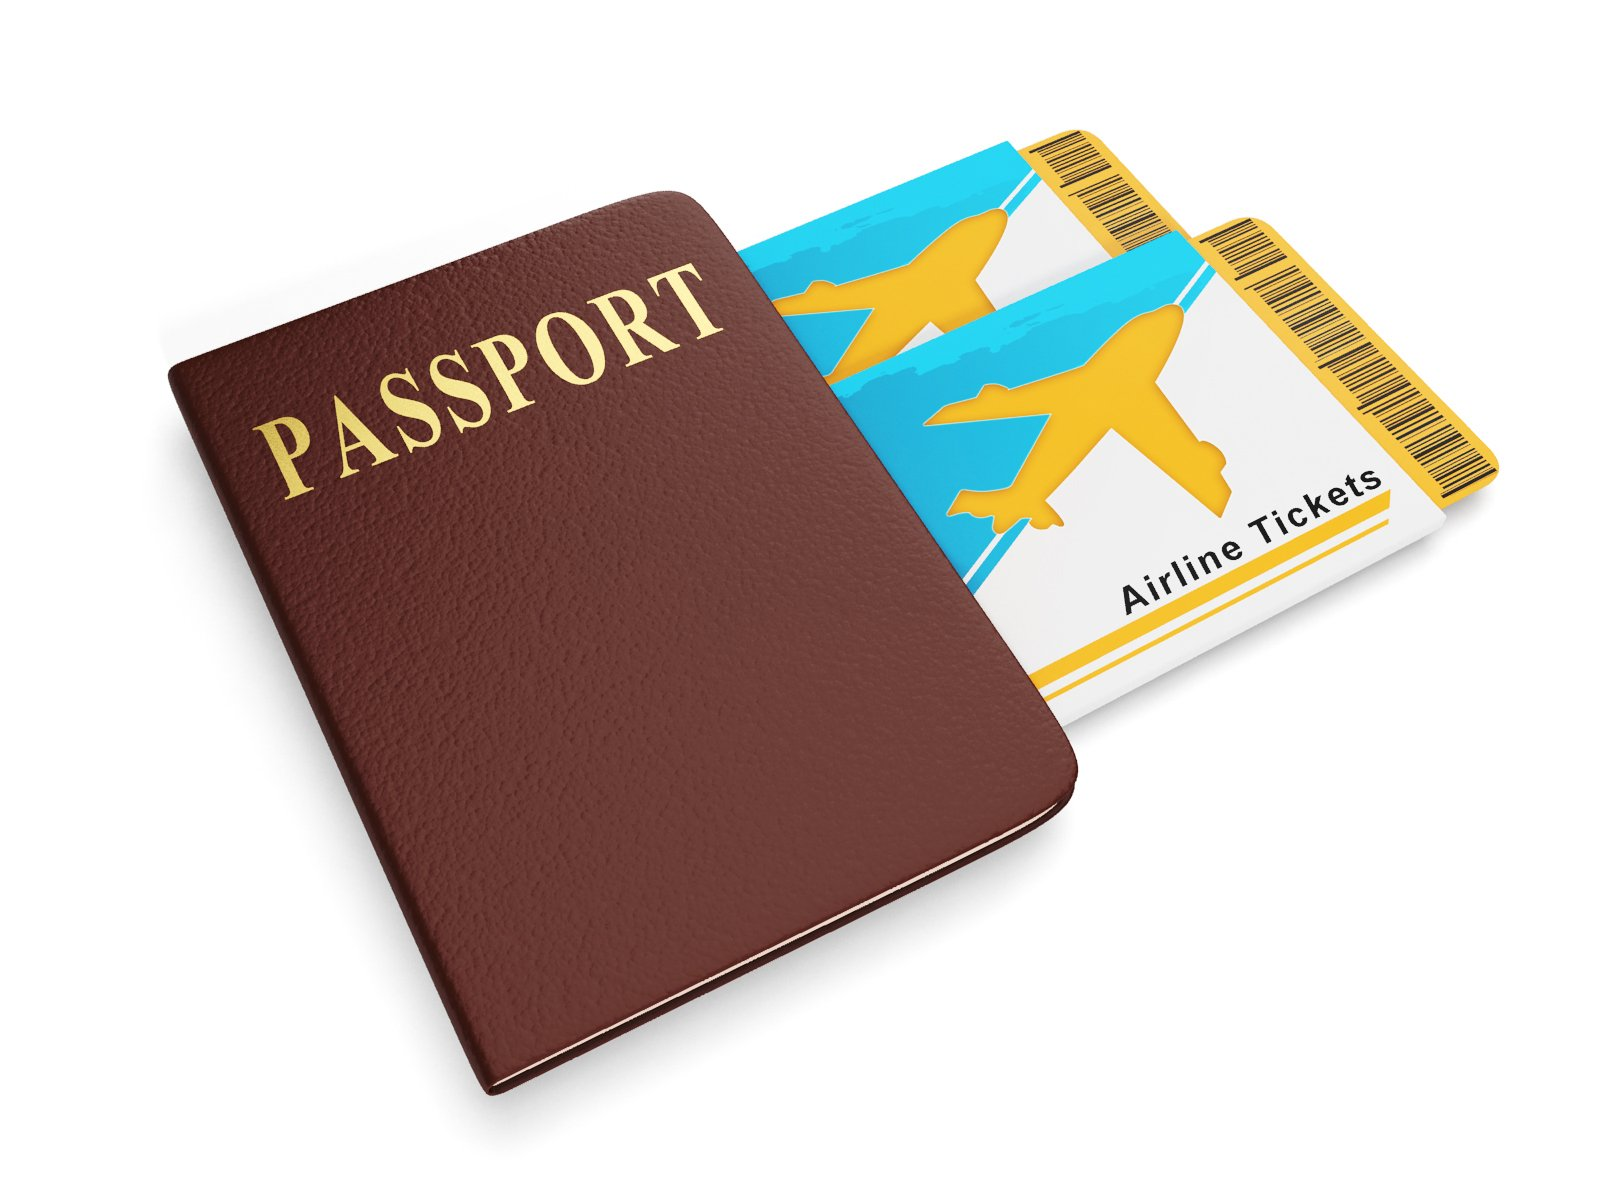 Free Sign trip. Group ticket and passport, holidays abr ...